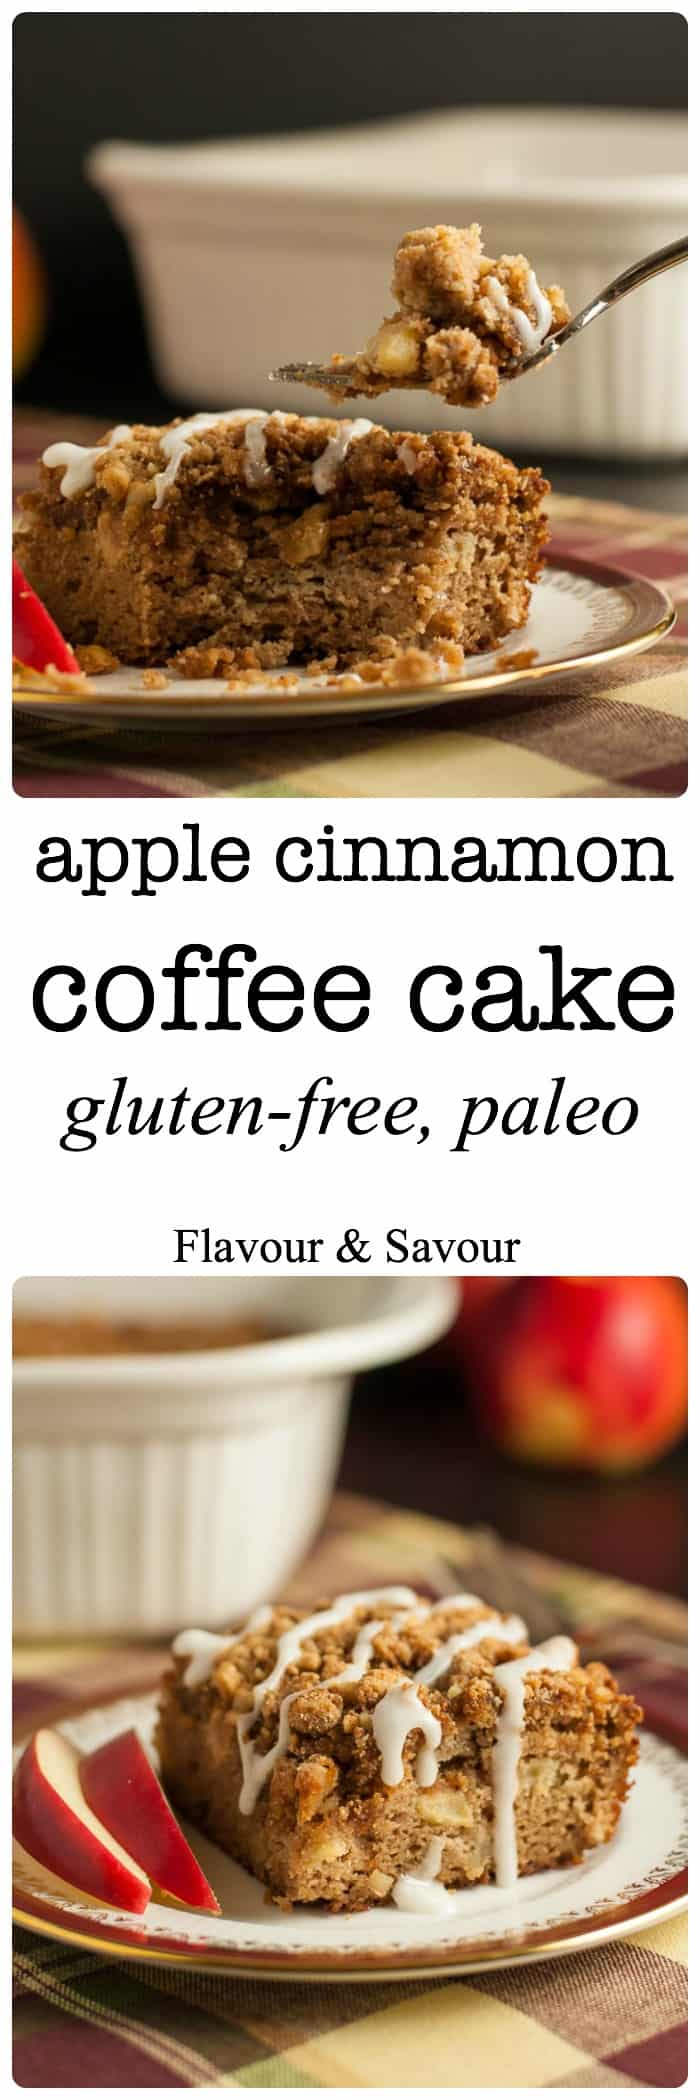 This Gluten-Free Apple Cinnamon Coffee Cake is tender, moist, grain-free and dairy-free. It's sweetened with maple syrup and coconut sugar. You'd never guess it's Paleo! |www.flavourandsavour.com